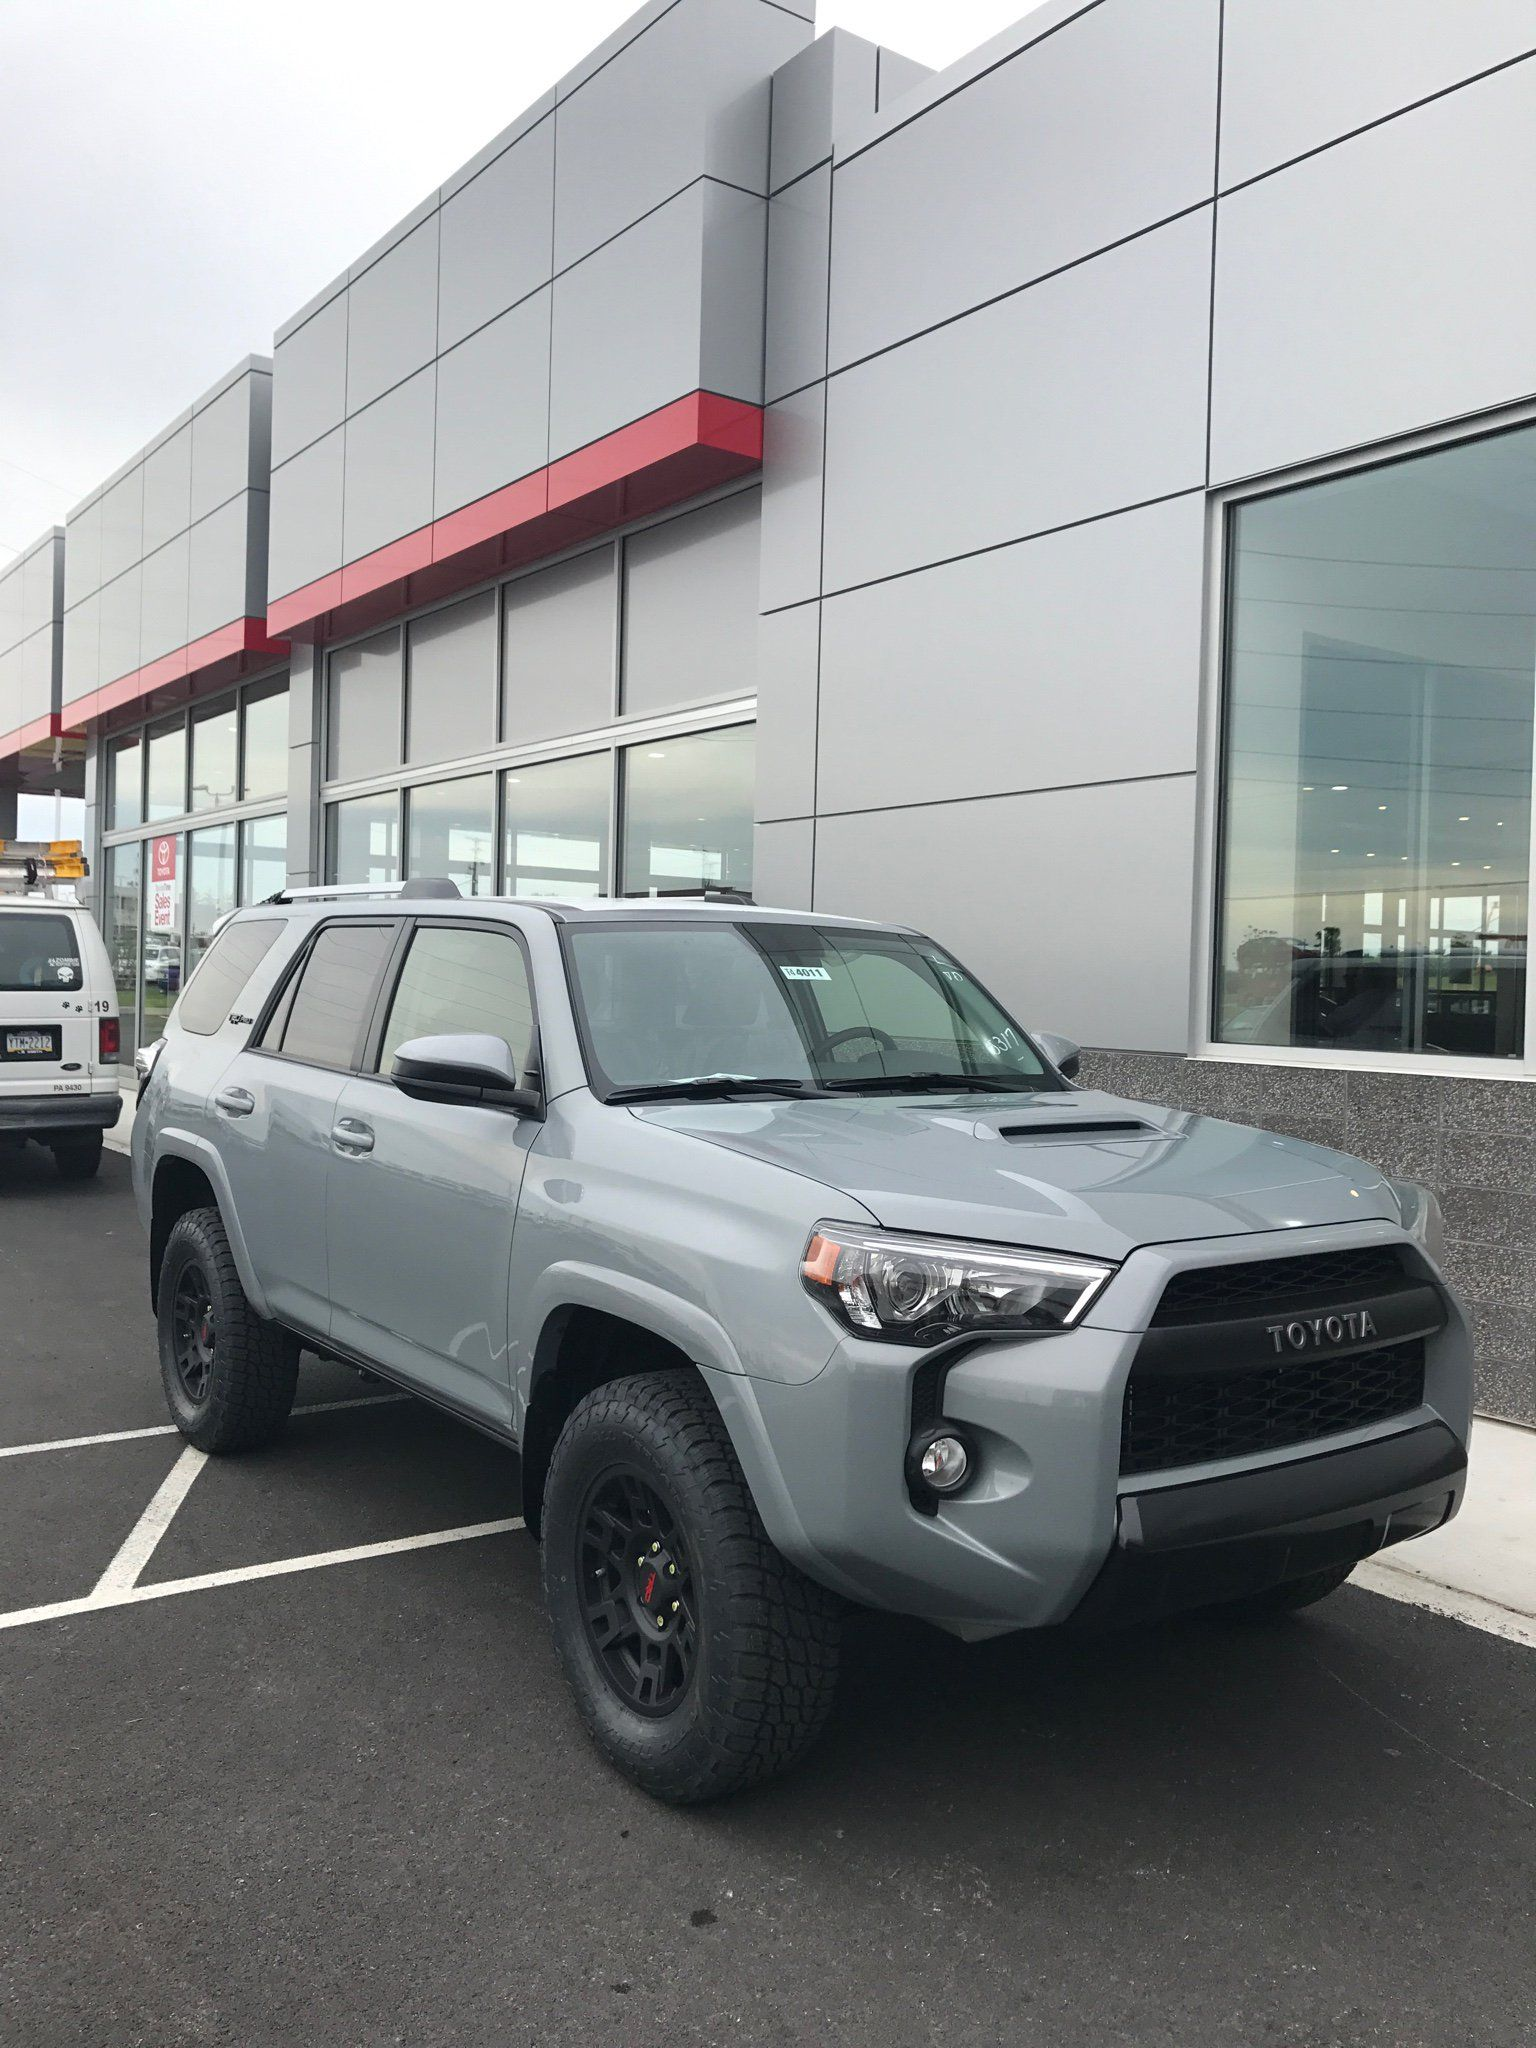 2018 Trd Pro Colors Cement Page 3 Toyota 4runner Forum Largest